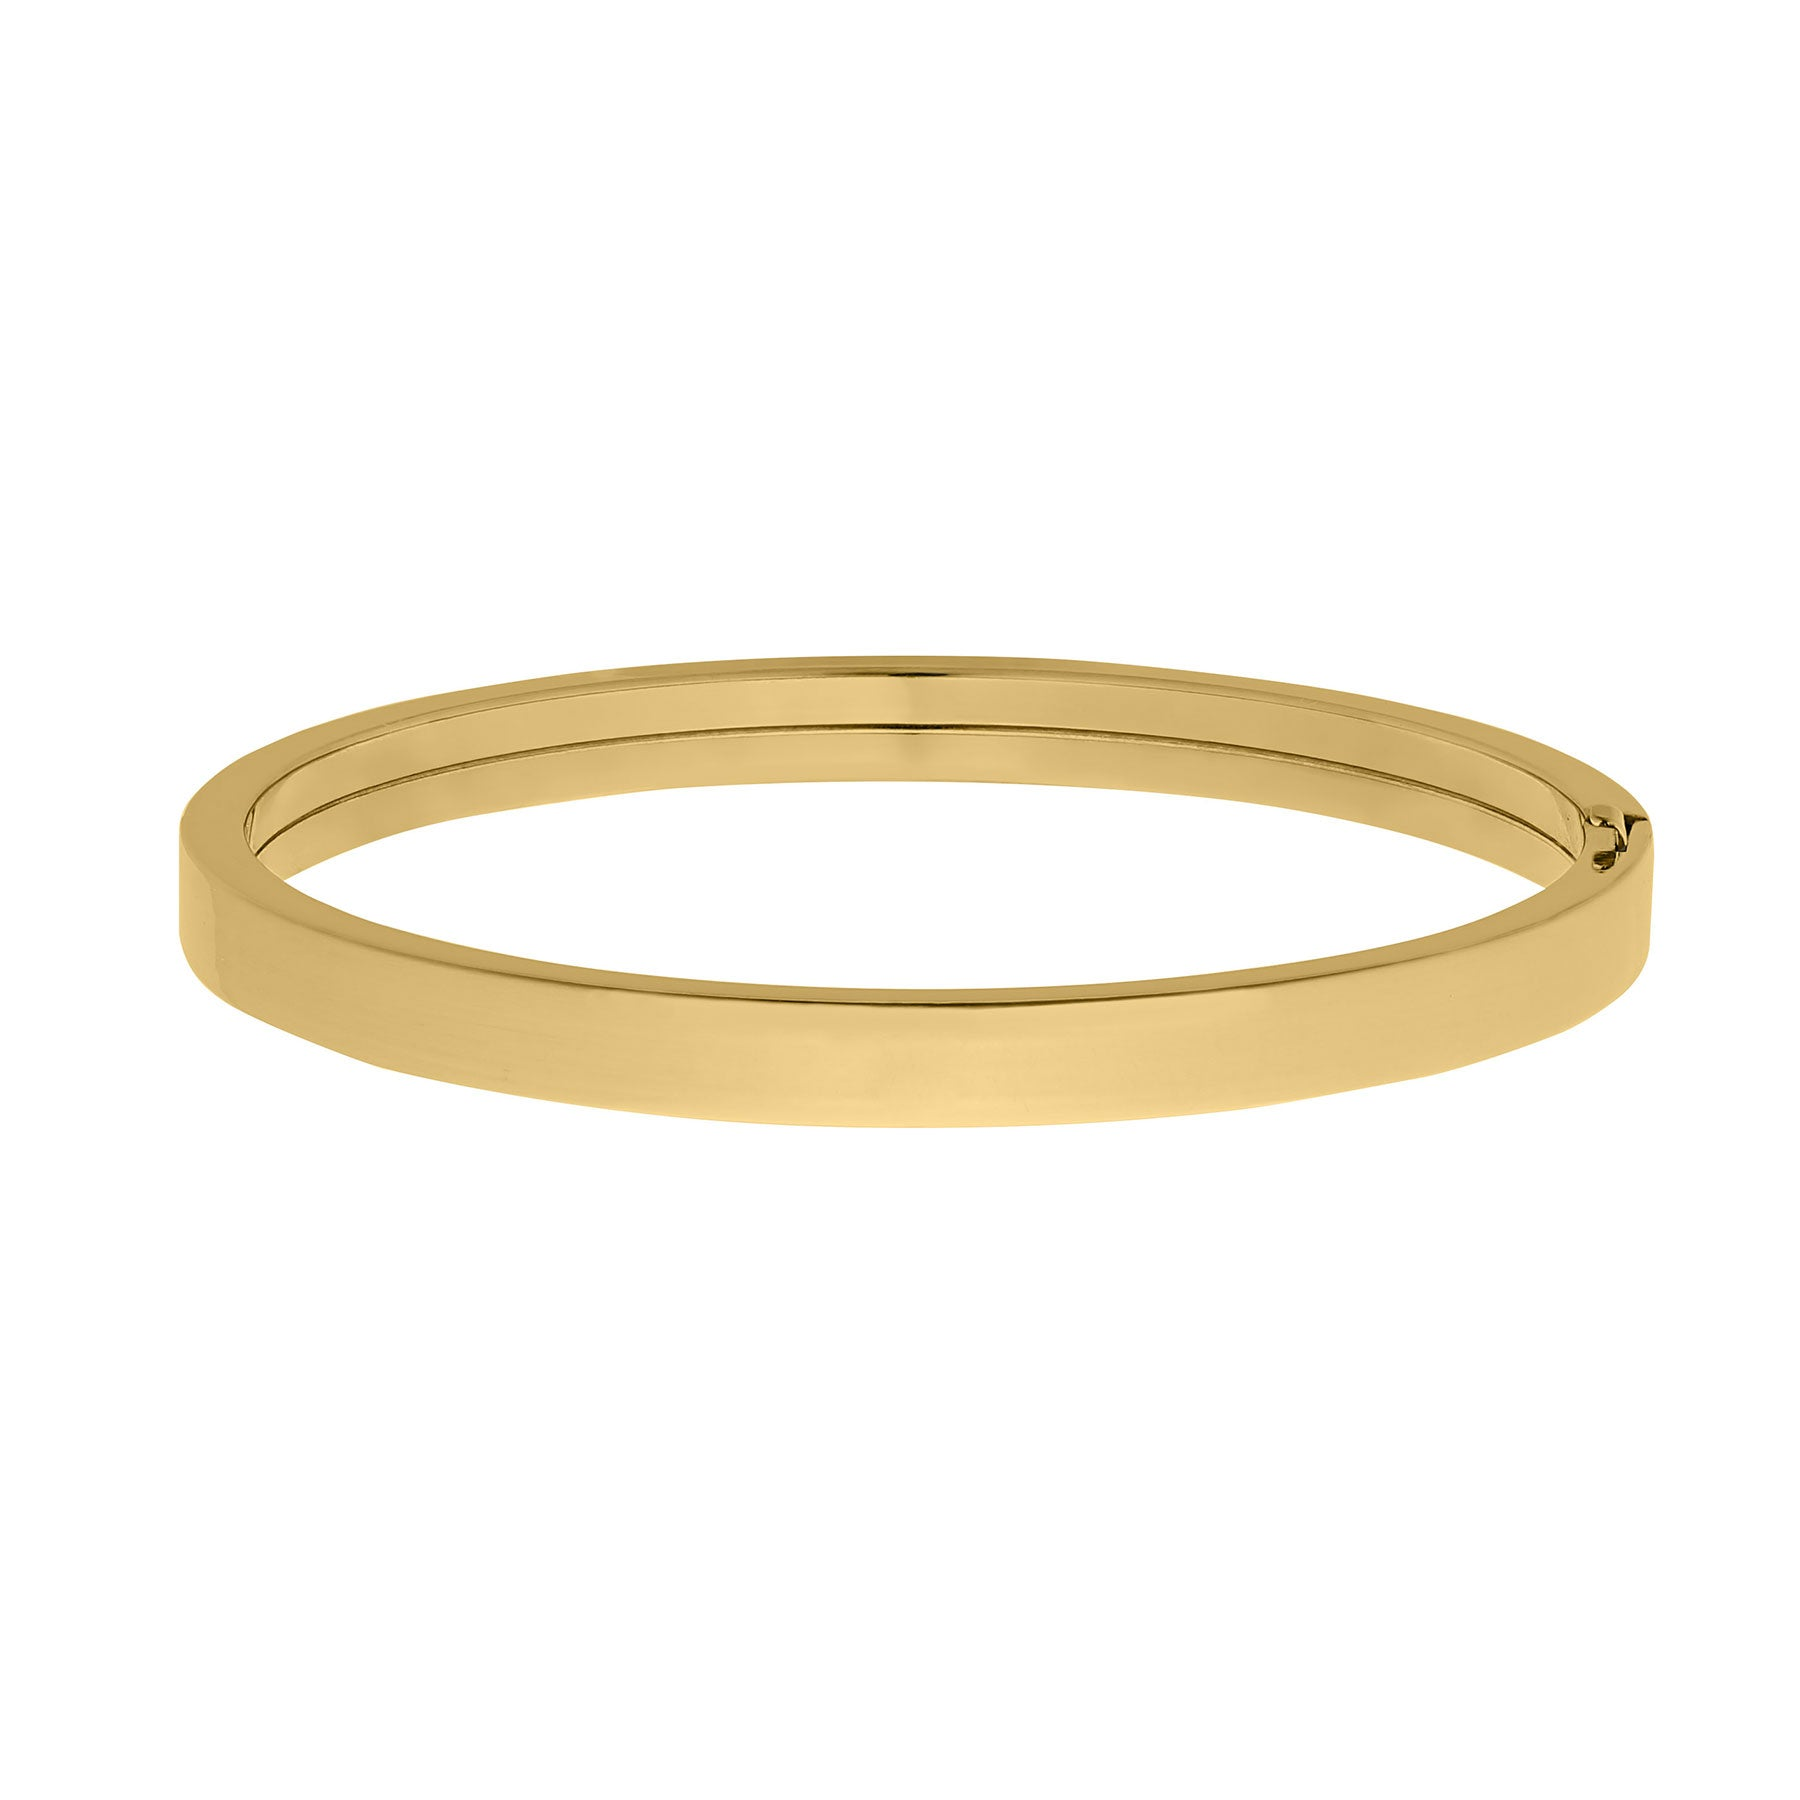 Adult 14K Gold-Filled Plain Flat 6mm Bangle